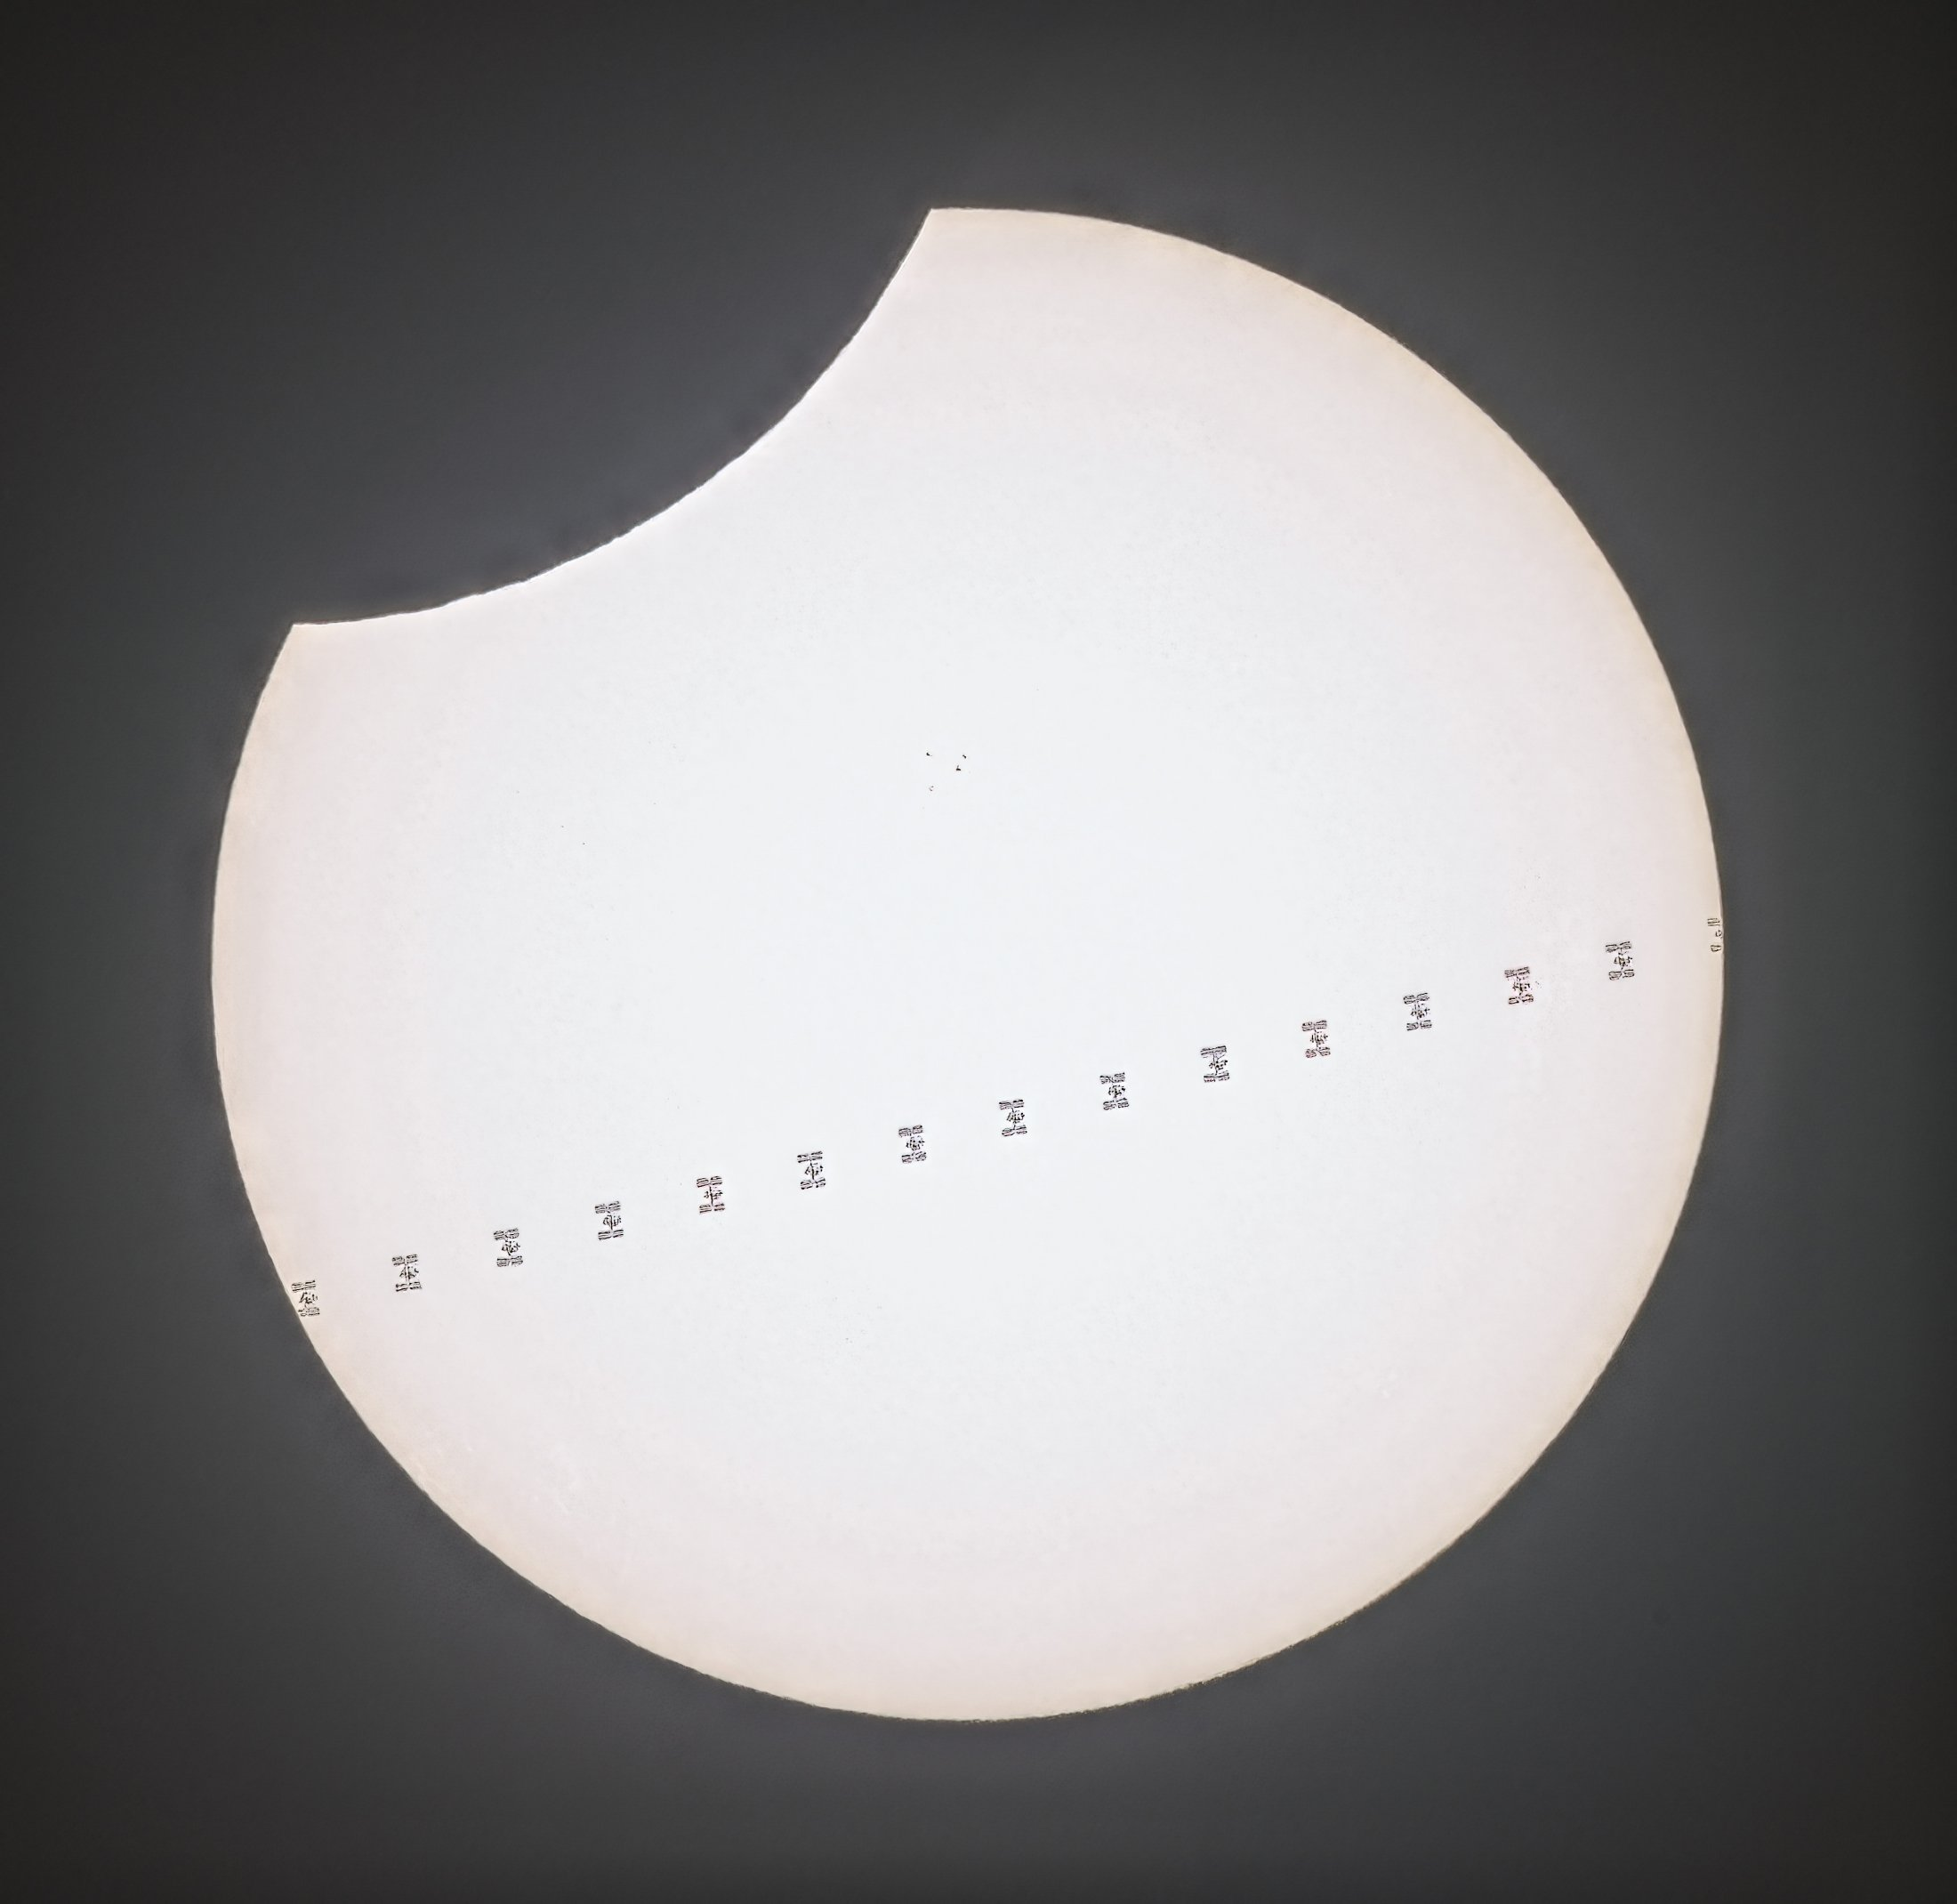 ISS in front of eclipse